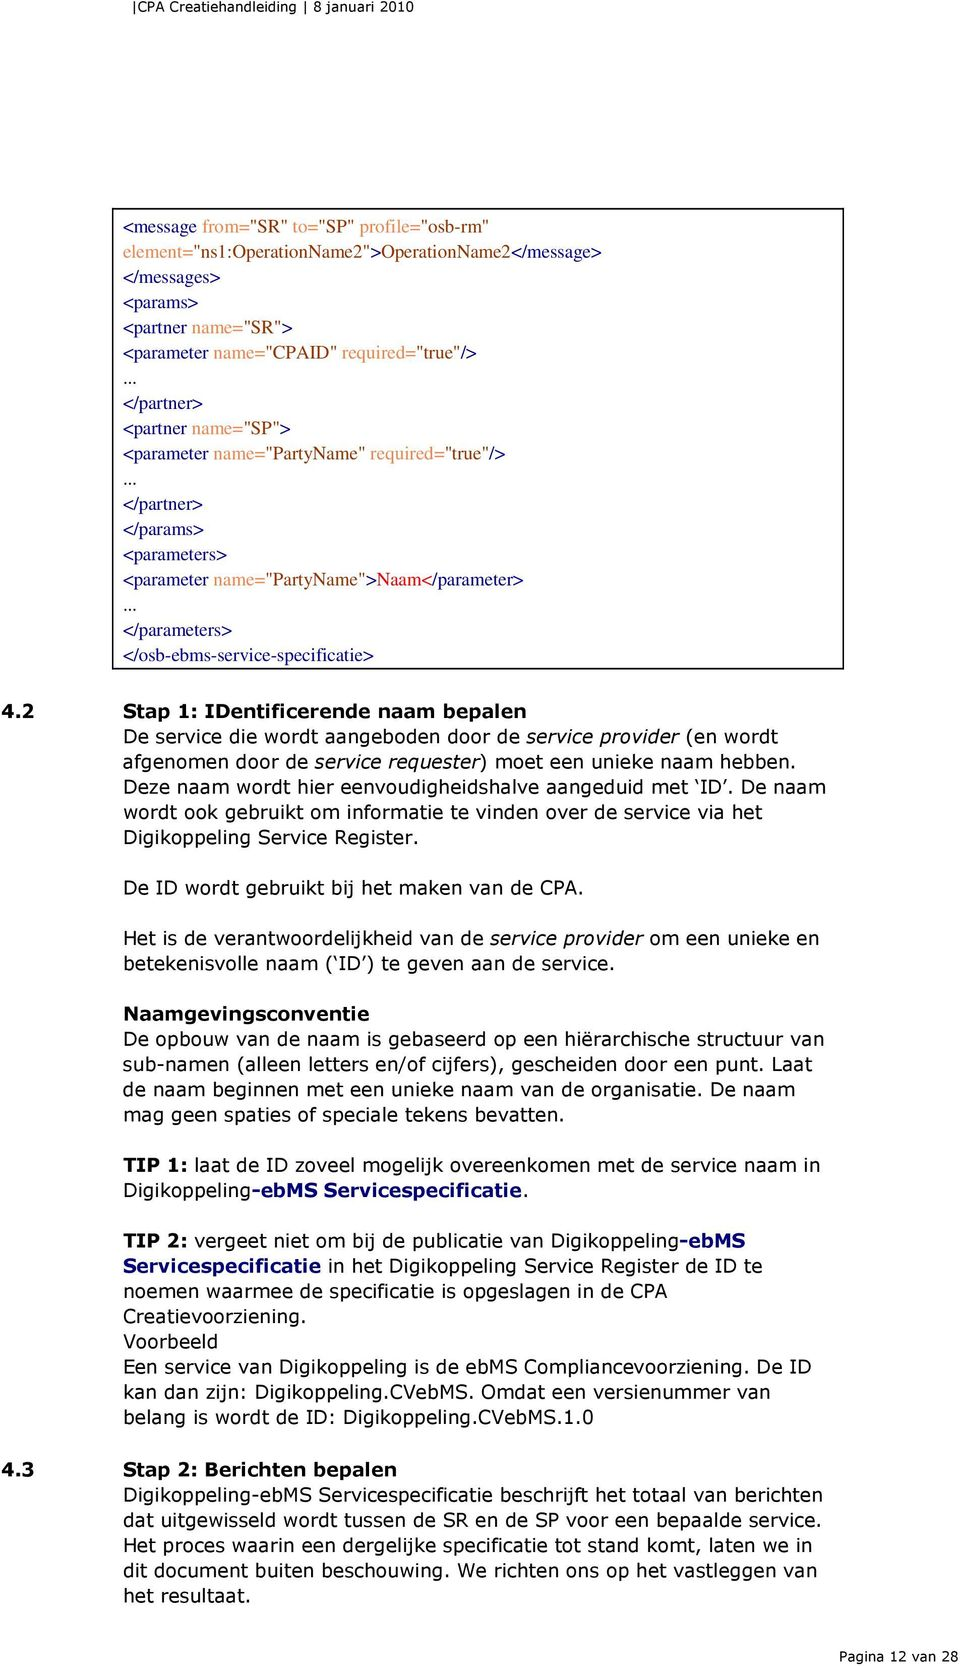 .. </parameters> </osb-ebms-service-specificatie> 4.